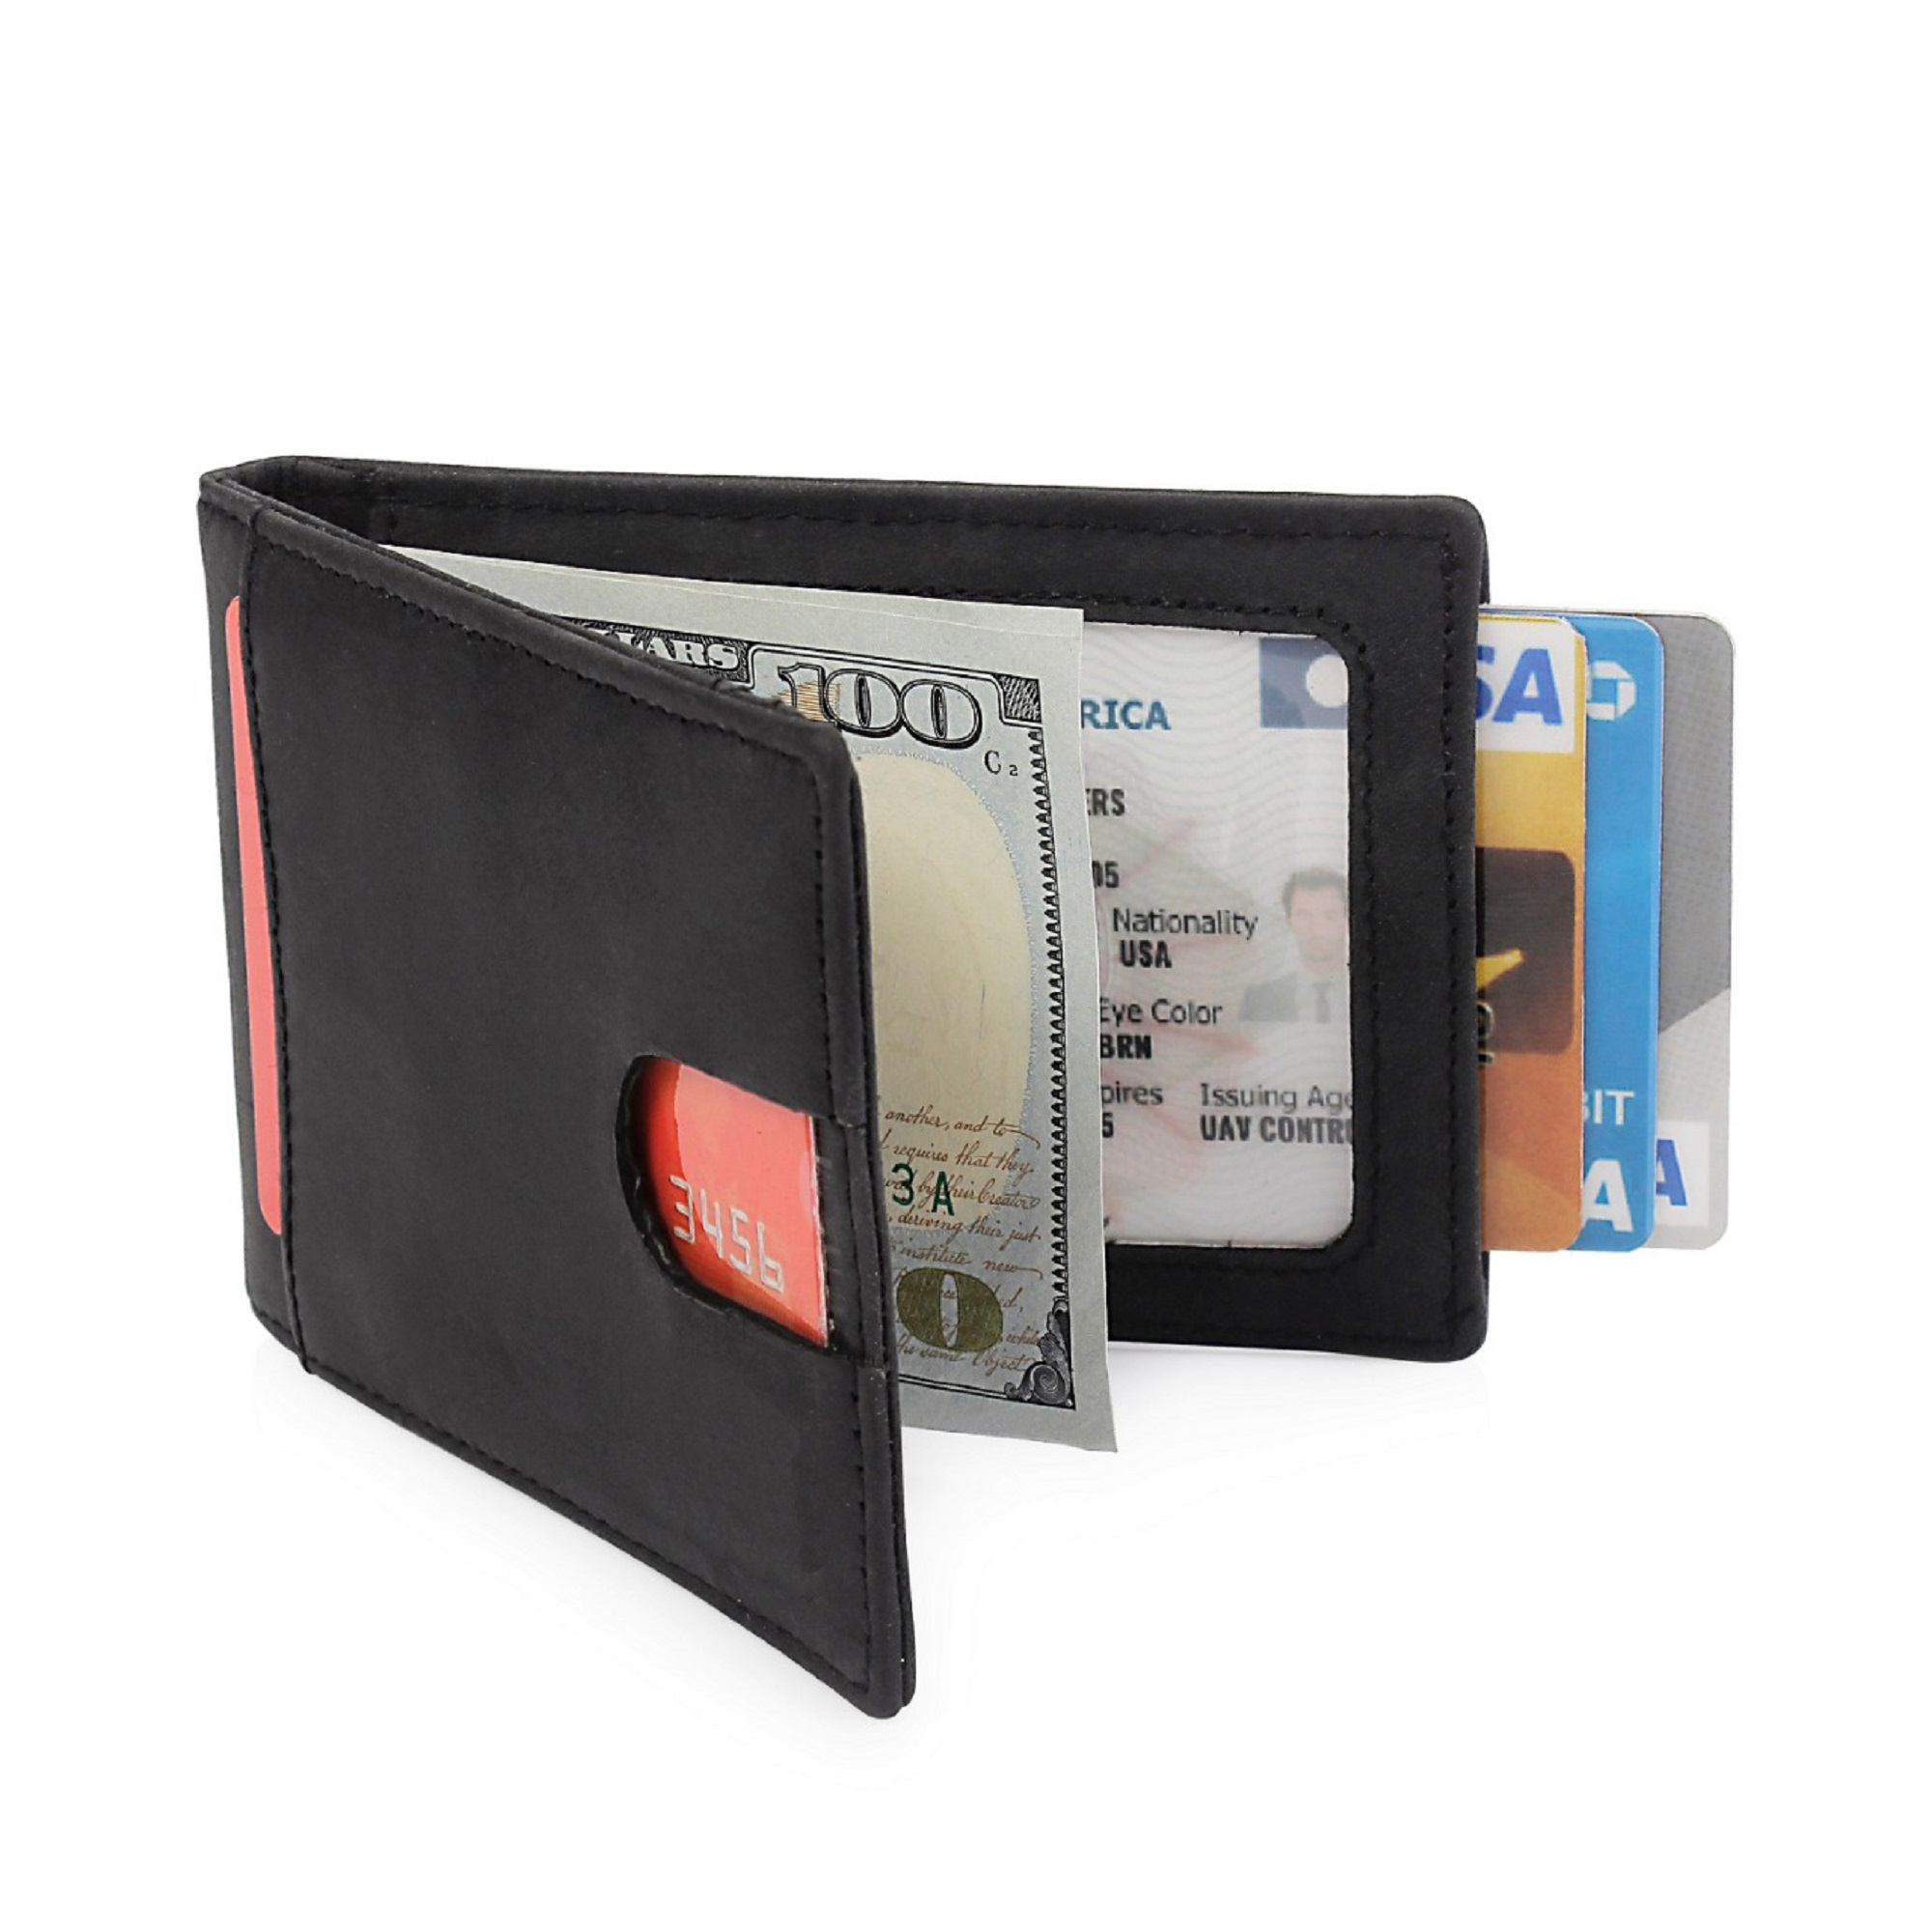 Leather Money Clip Wallet Manufacturers In Montreal, Money Clip Wallet Suppliers In Montreal, Money Clip Wallet Wholesalers In Montreal, Money Clip Wallet Traders In Montreal